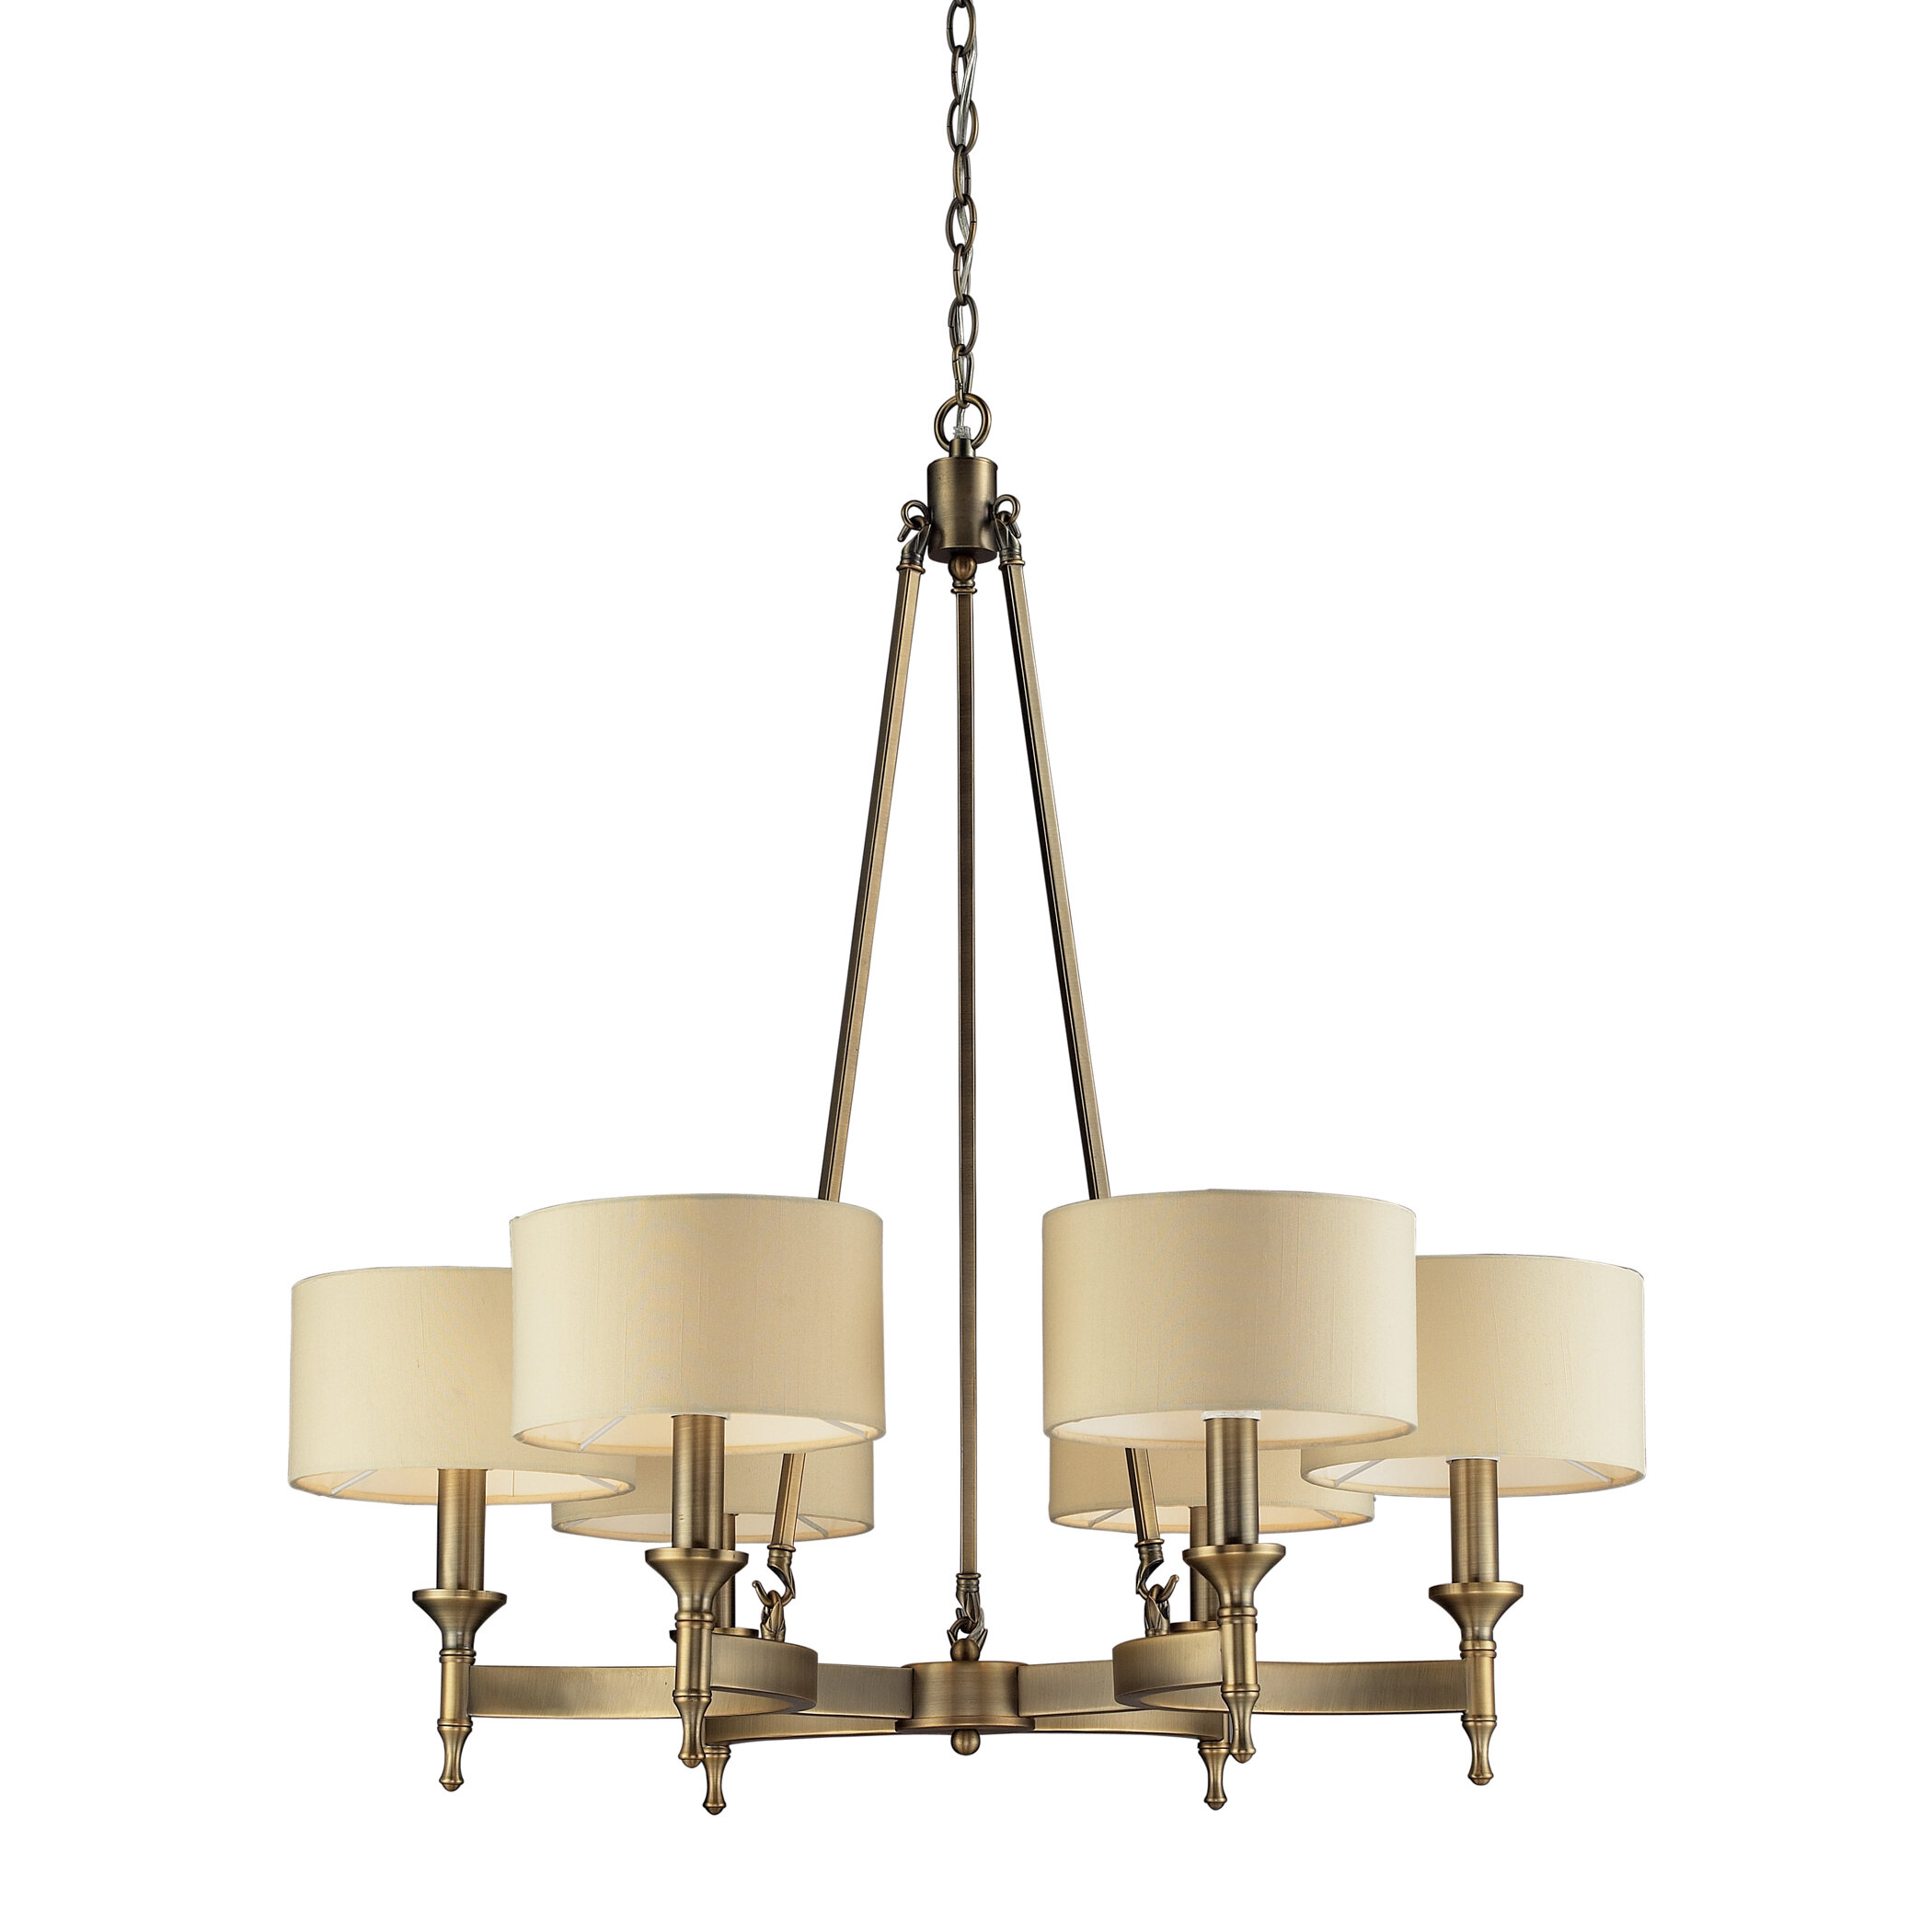 """New clean waxed Brass Ceiling Light Fixture 4/"""" or Antique 3 Chain Shade Holder"""